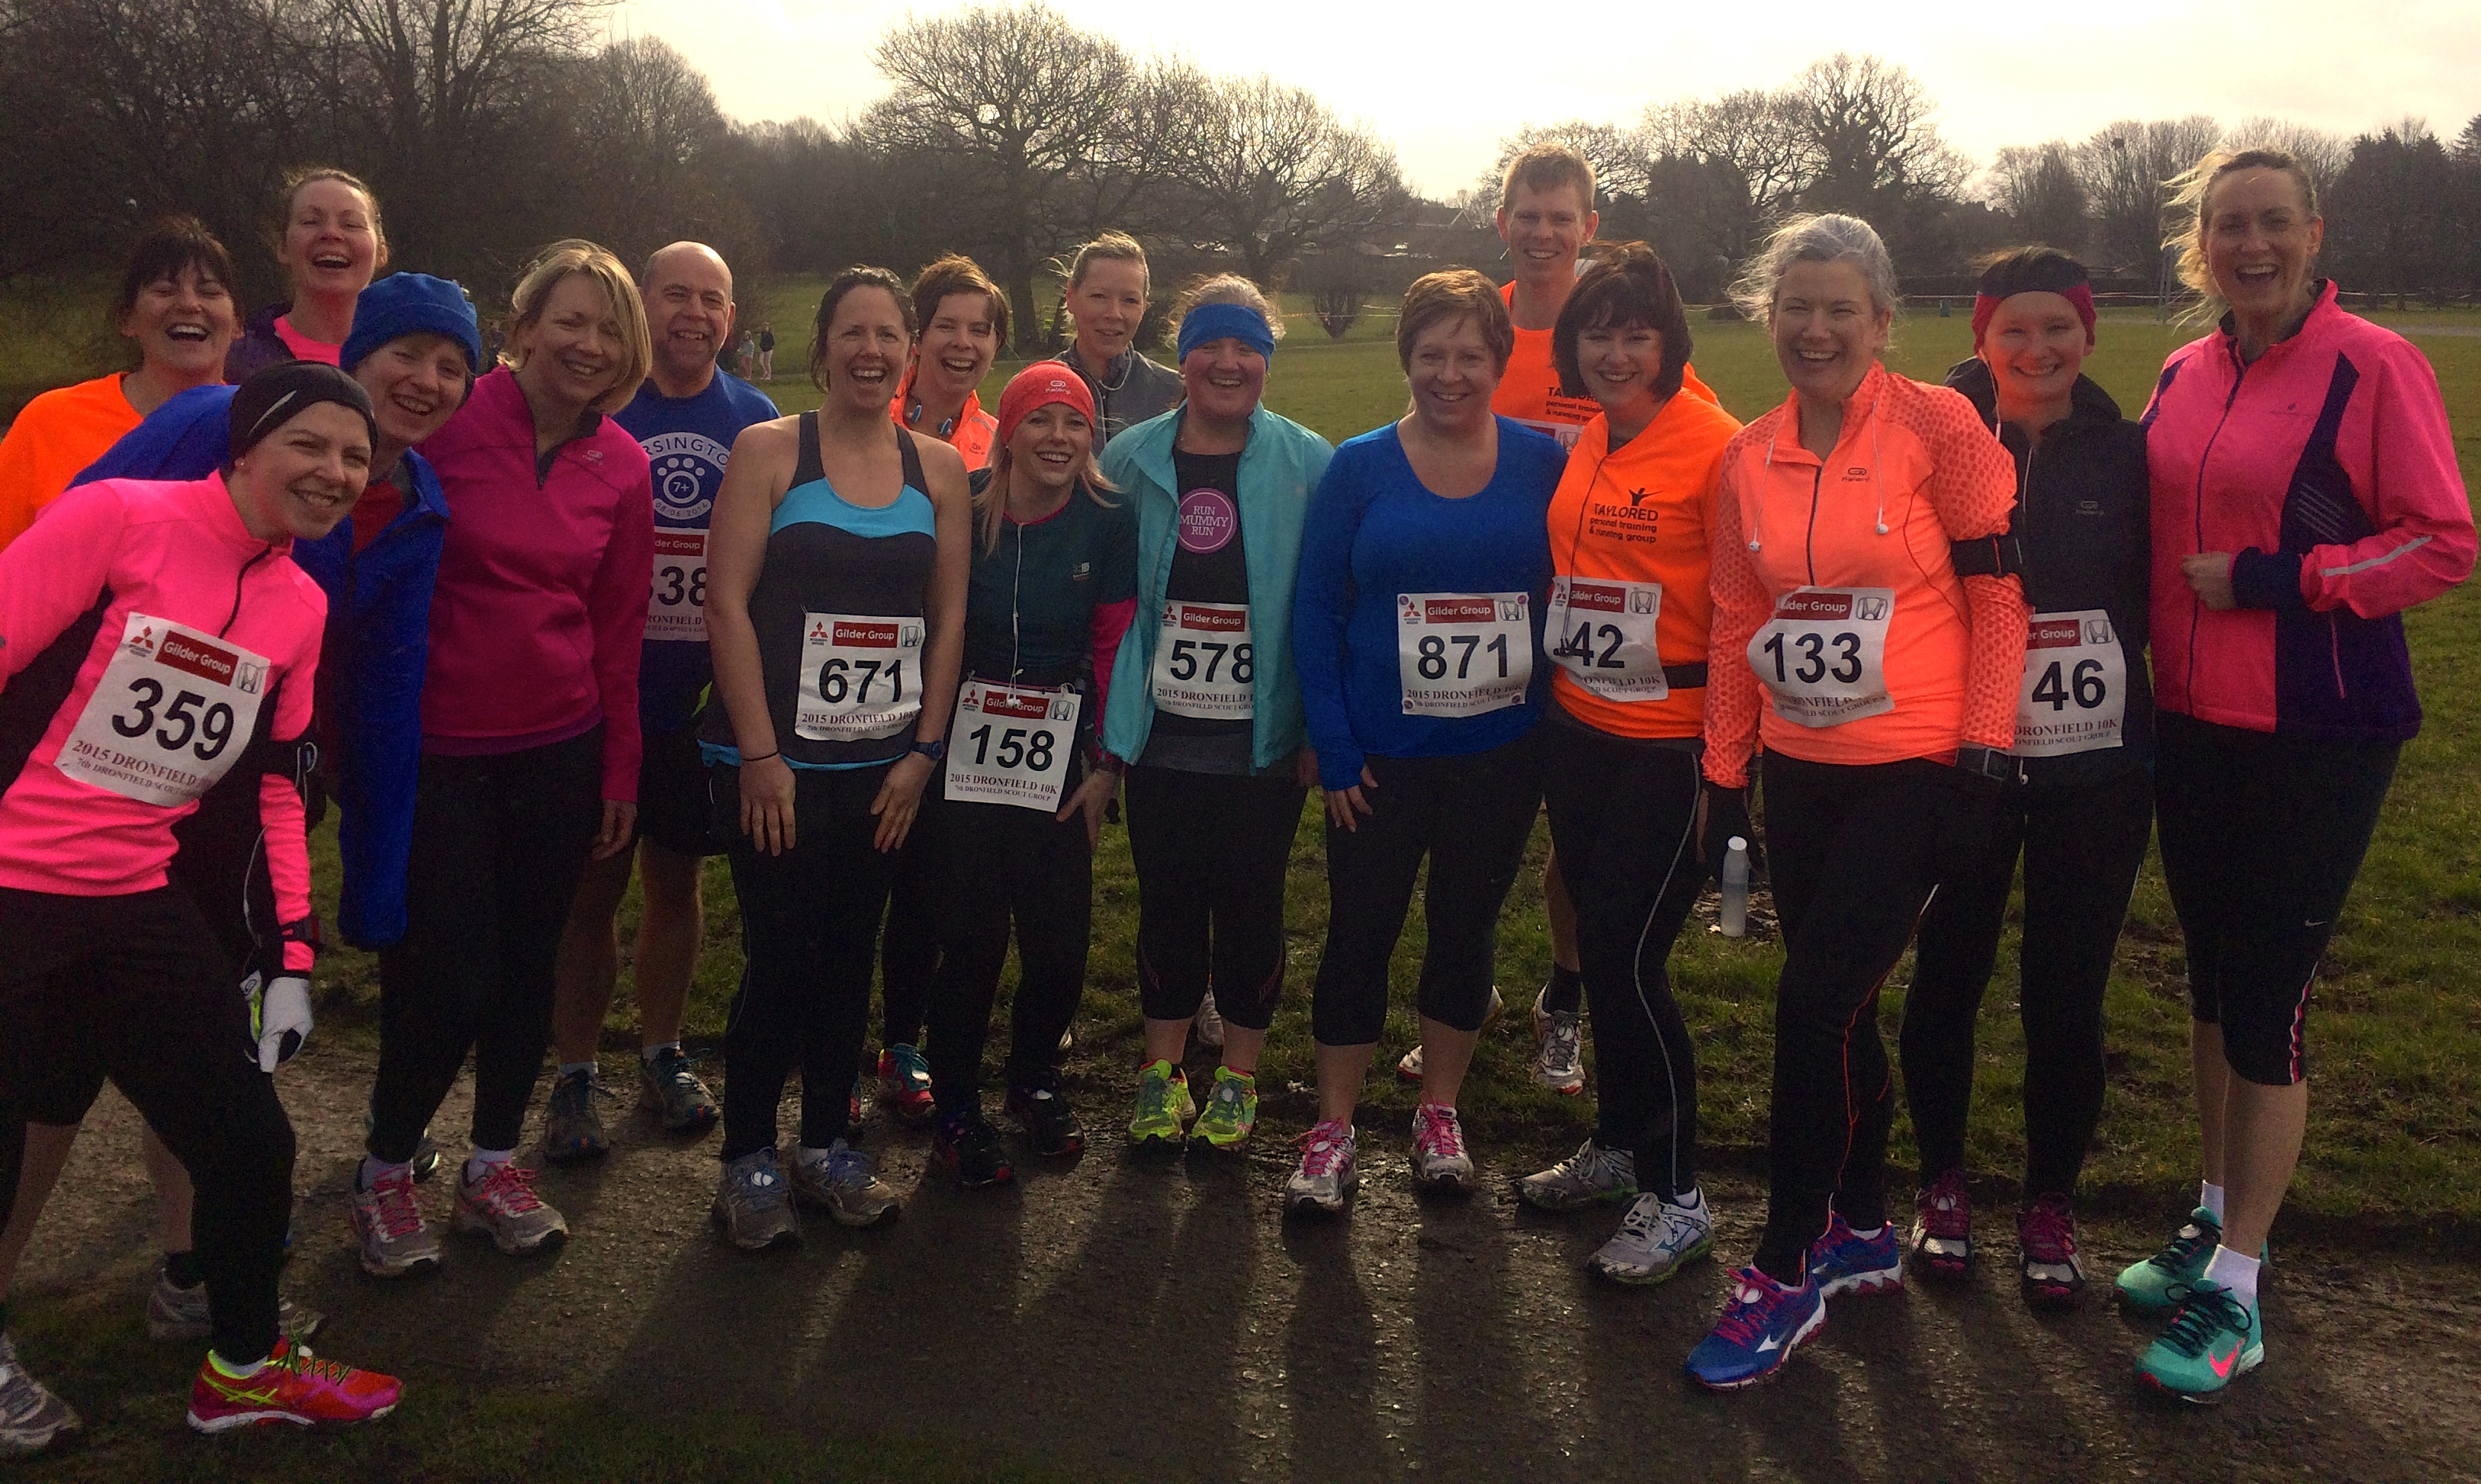 Taylored running group @ the Dronfield 10k 2015